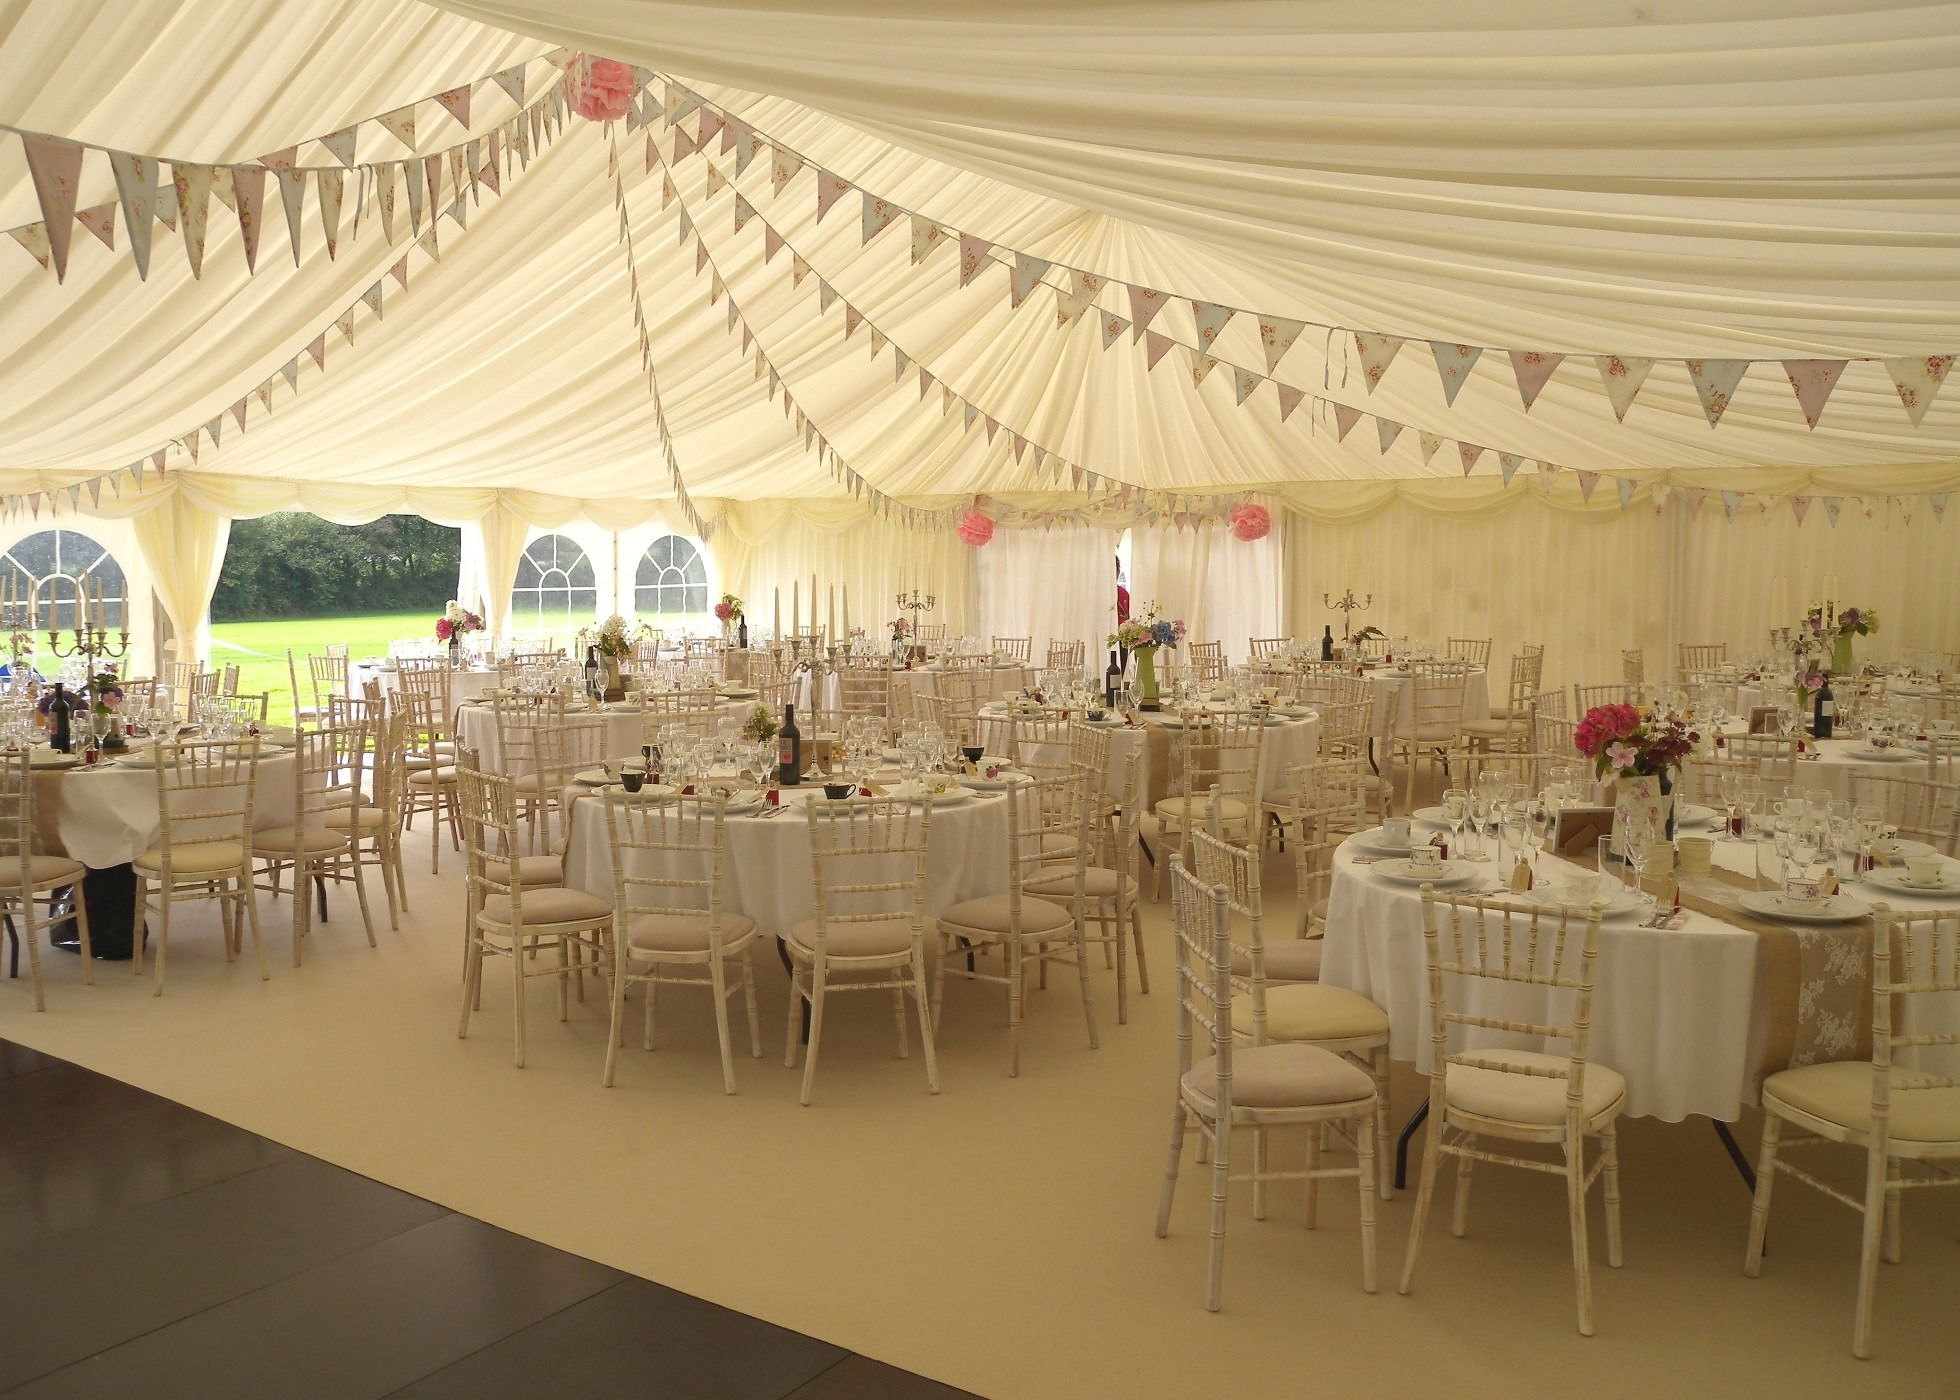 Wedding Marquee beautiful interior featuring bunting, candelabras, wooden flooring and carpet